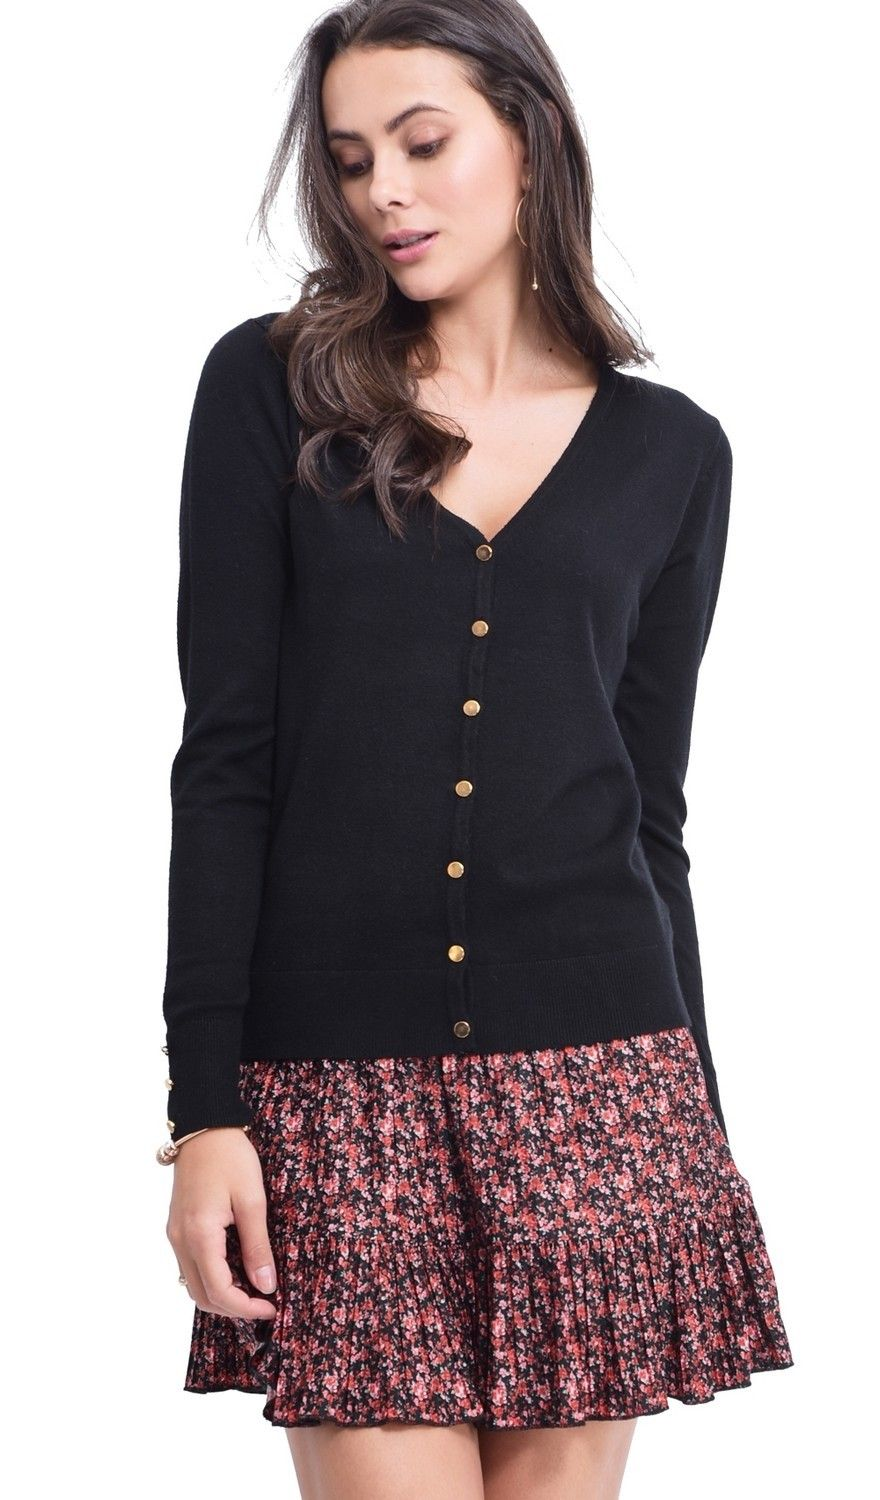 Assuili V-neck Cardigan with Gold Buttons in Black